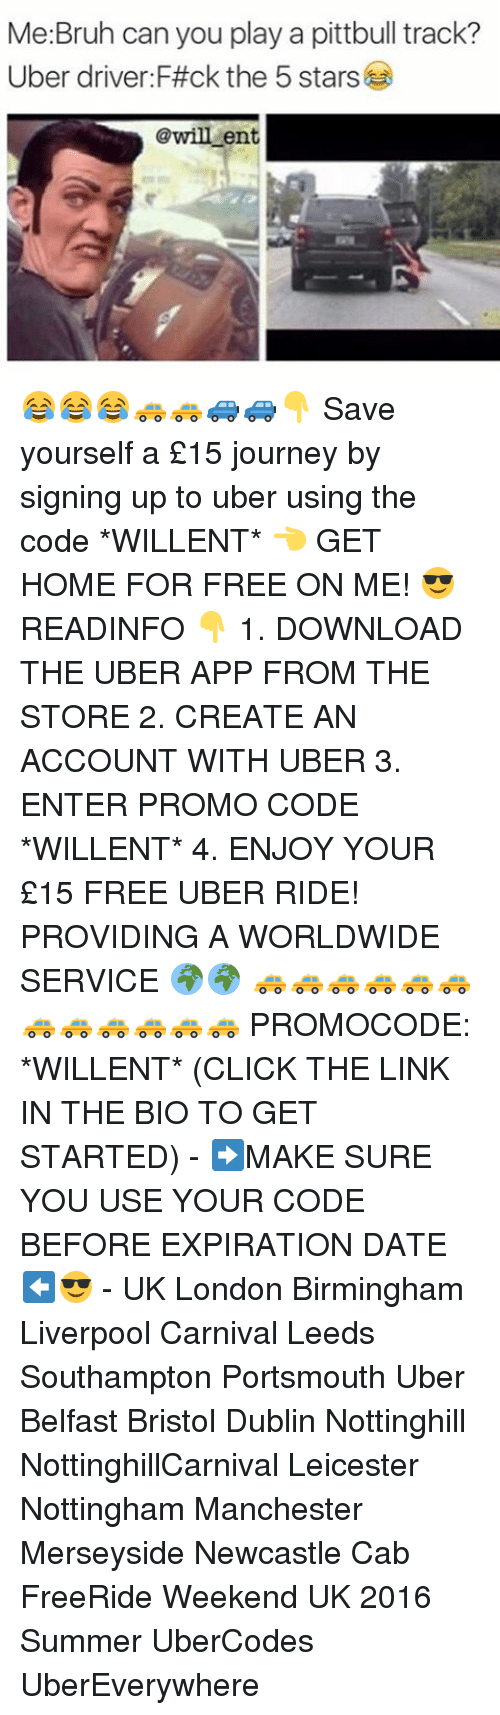 Memes, Uber Driver, and Bristol: Me Bruh can you play a pittb  Uber driver F#ck the 5 stars  @will ent 😂😂😂🚕🚕🚙🚙👇 Save yourself a £15 journey by signing up to uber using the code *WILLENT* 👈 GET HOME FOR FREE ON ME! 😎 READINFO 👇 1. DOWNLOAD THE UBER APP FROM THE STORE 2. CREATE AN ACCOUNT WITH UBER 3. ENTER PROMO CODE *WILLENT* 4. ENJOY YOUR £15 FREE UBER RIDE! PROVIDING A WORLDWIDE SERVICE 🌍🌍 🚕🚕🚕🚕🚕🚕🚕🚕🚕🚕🚕🚕 PROMOCODE: *WILLENT* (CLICK THE LINK IN THE BIO TO GET STARTED) - ➡️MAKE SURE YOU USE YOUR CODE BEFORE EXPIRATION DATE ⬅️😎 - UK London Birmingham Liverpool Carnival Leeds Southampton Portsmouth Uber Belfast Bristol Dublin Nottinghill NottinghillCarnival Leicester Nottingham Manchester Merseyside Newcastle Cab FreeRide Weekend UK 2016 Summer UberCodes UberEverywhere